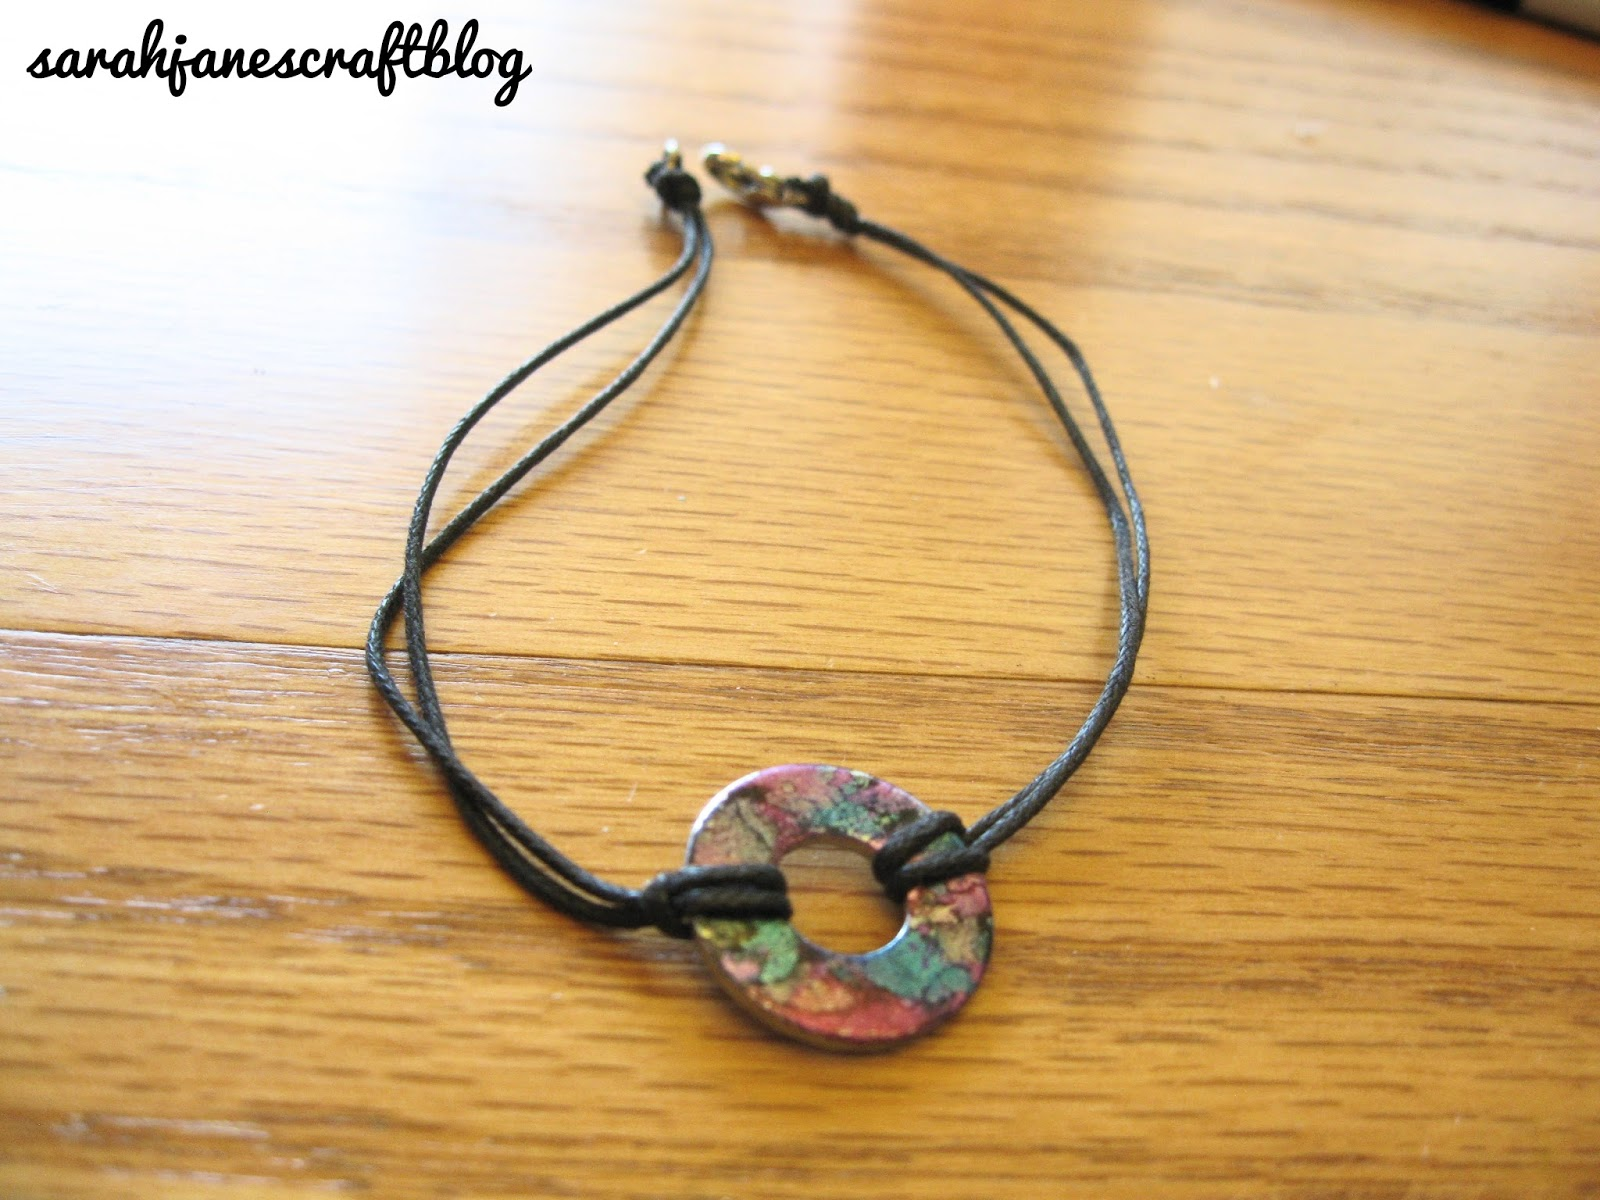 bracelet washer free to how necklace tutorial washers img jewelry created article a handmade make using